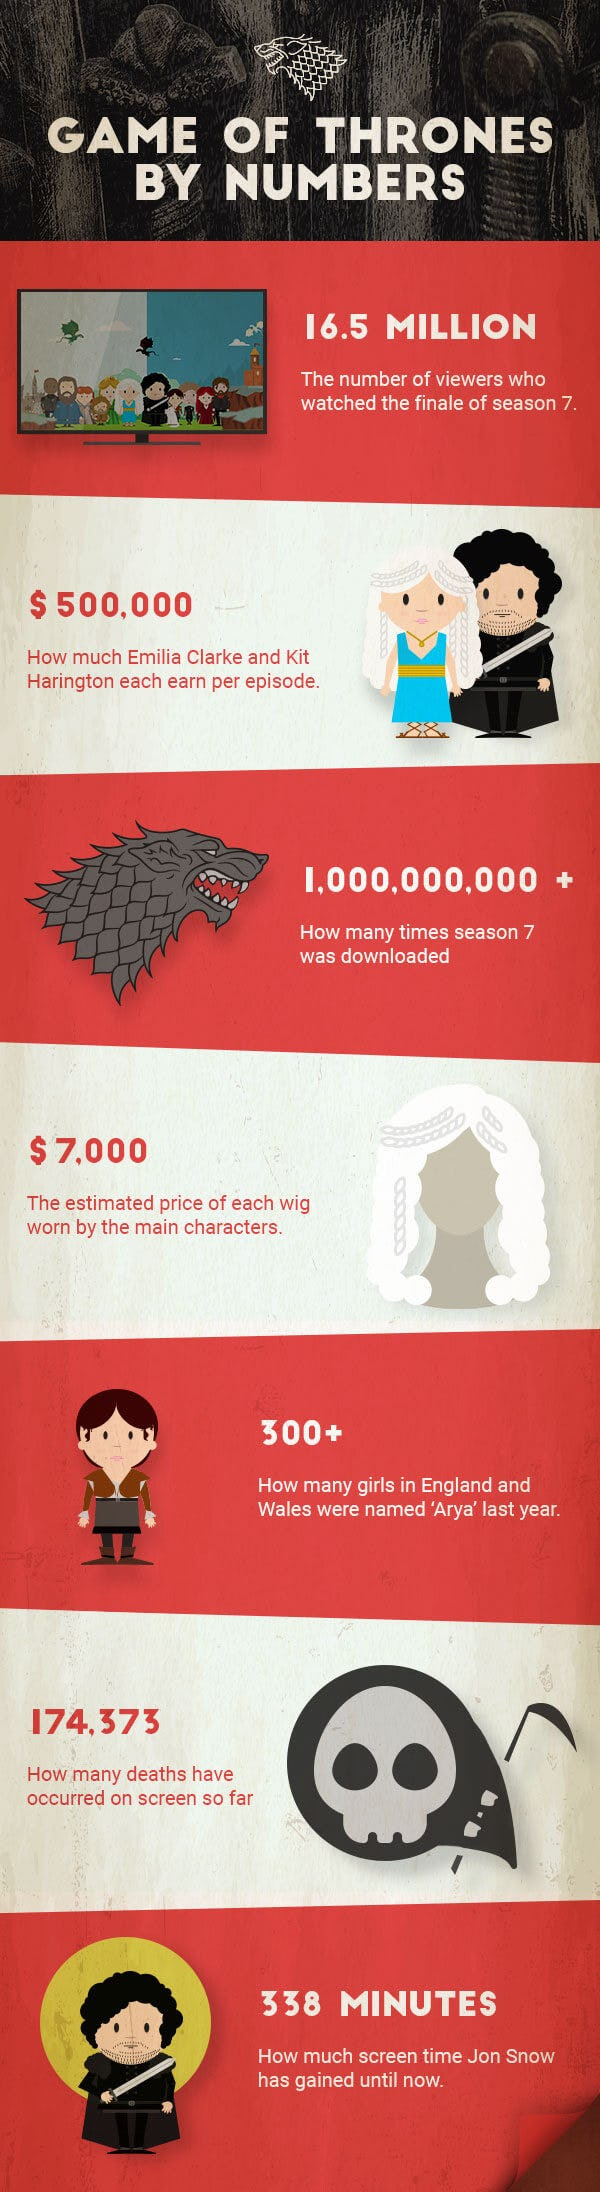 Game-of-Thrones-İnfografik-FilmLoverss